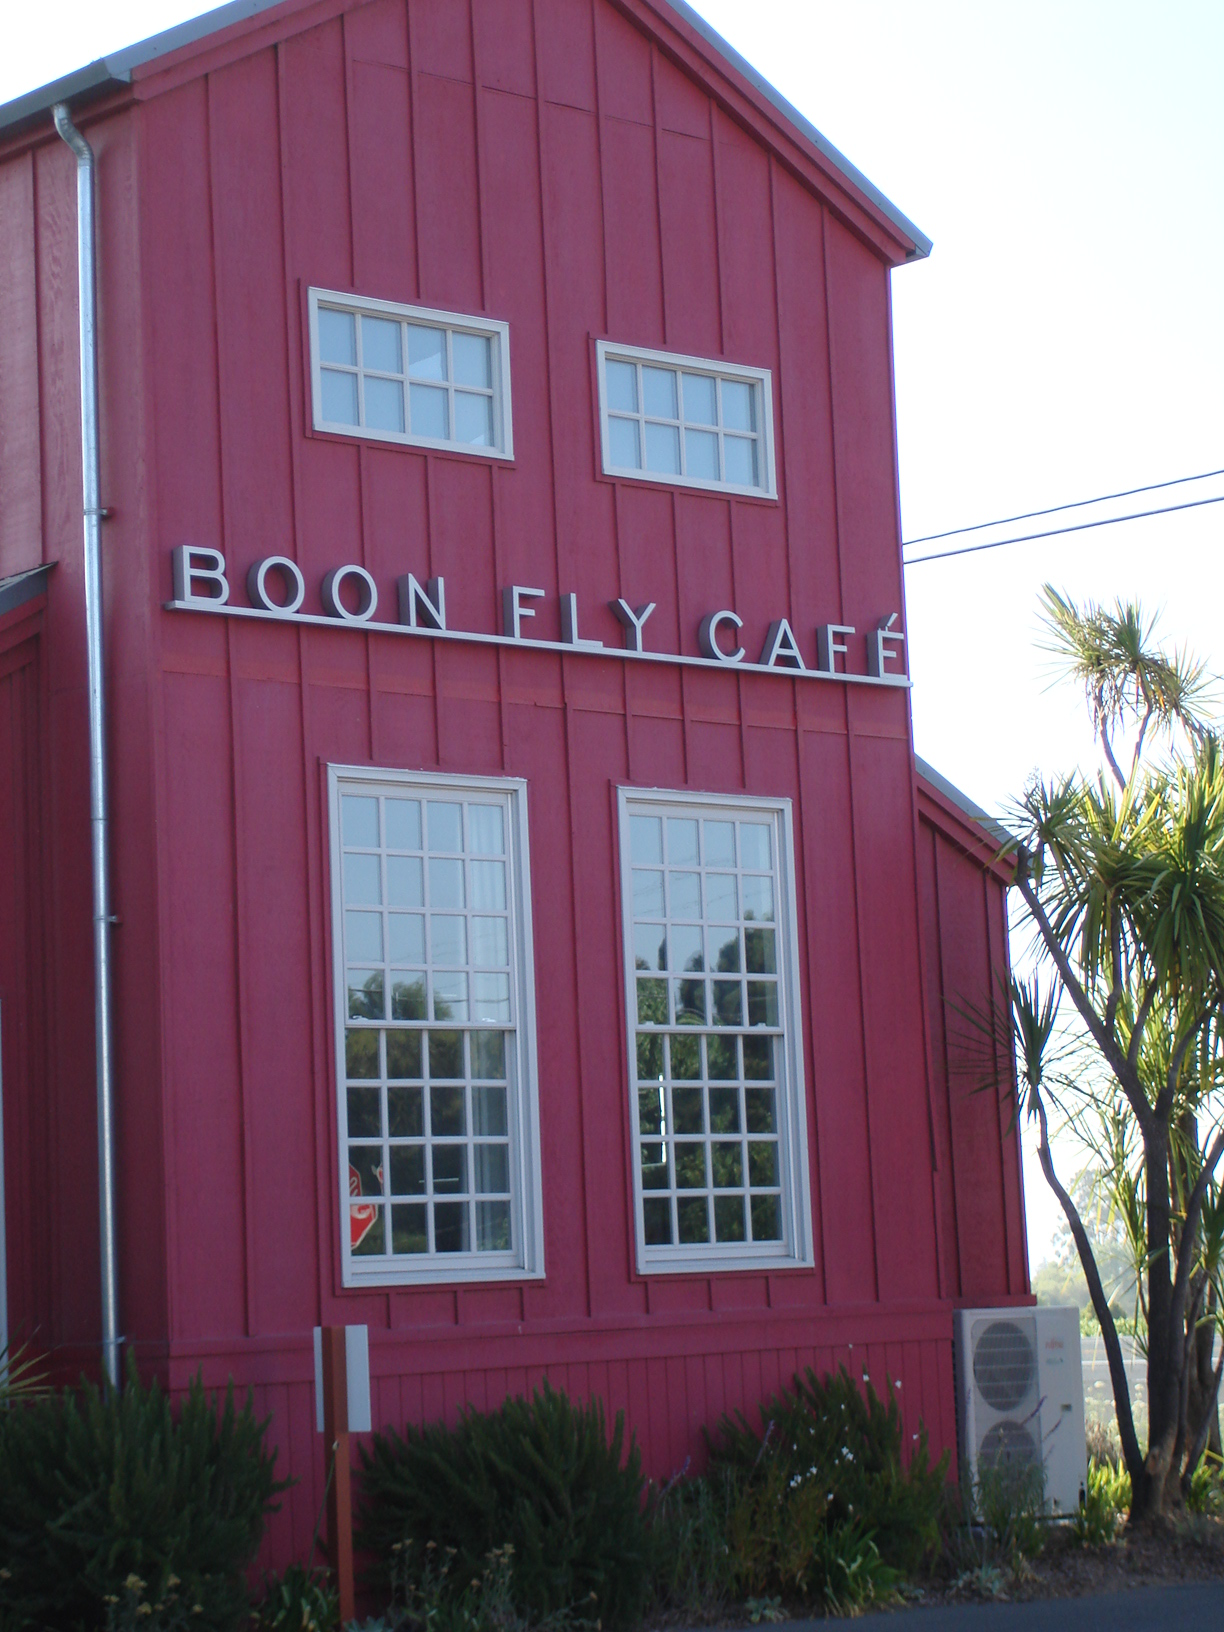 The Boon Fly Cafe